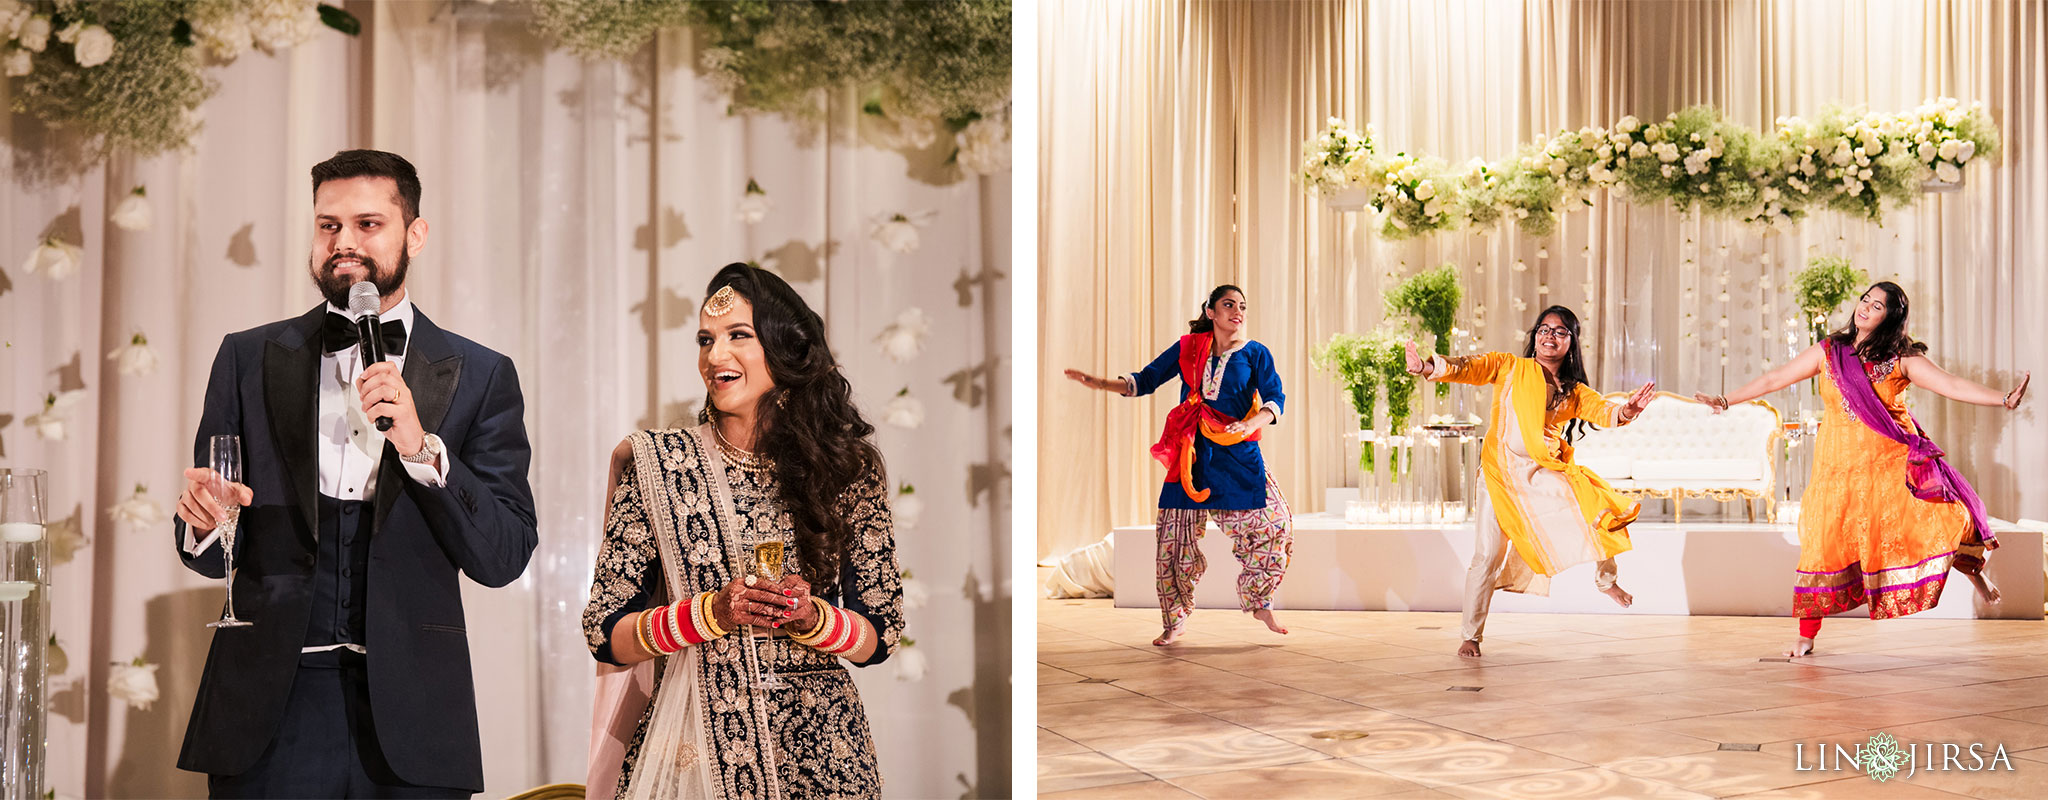 35 palm event center vineyard pleasanton punjabi sikh indian wedding photography